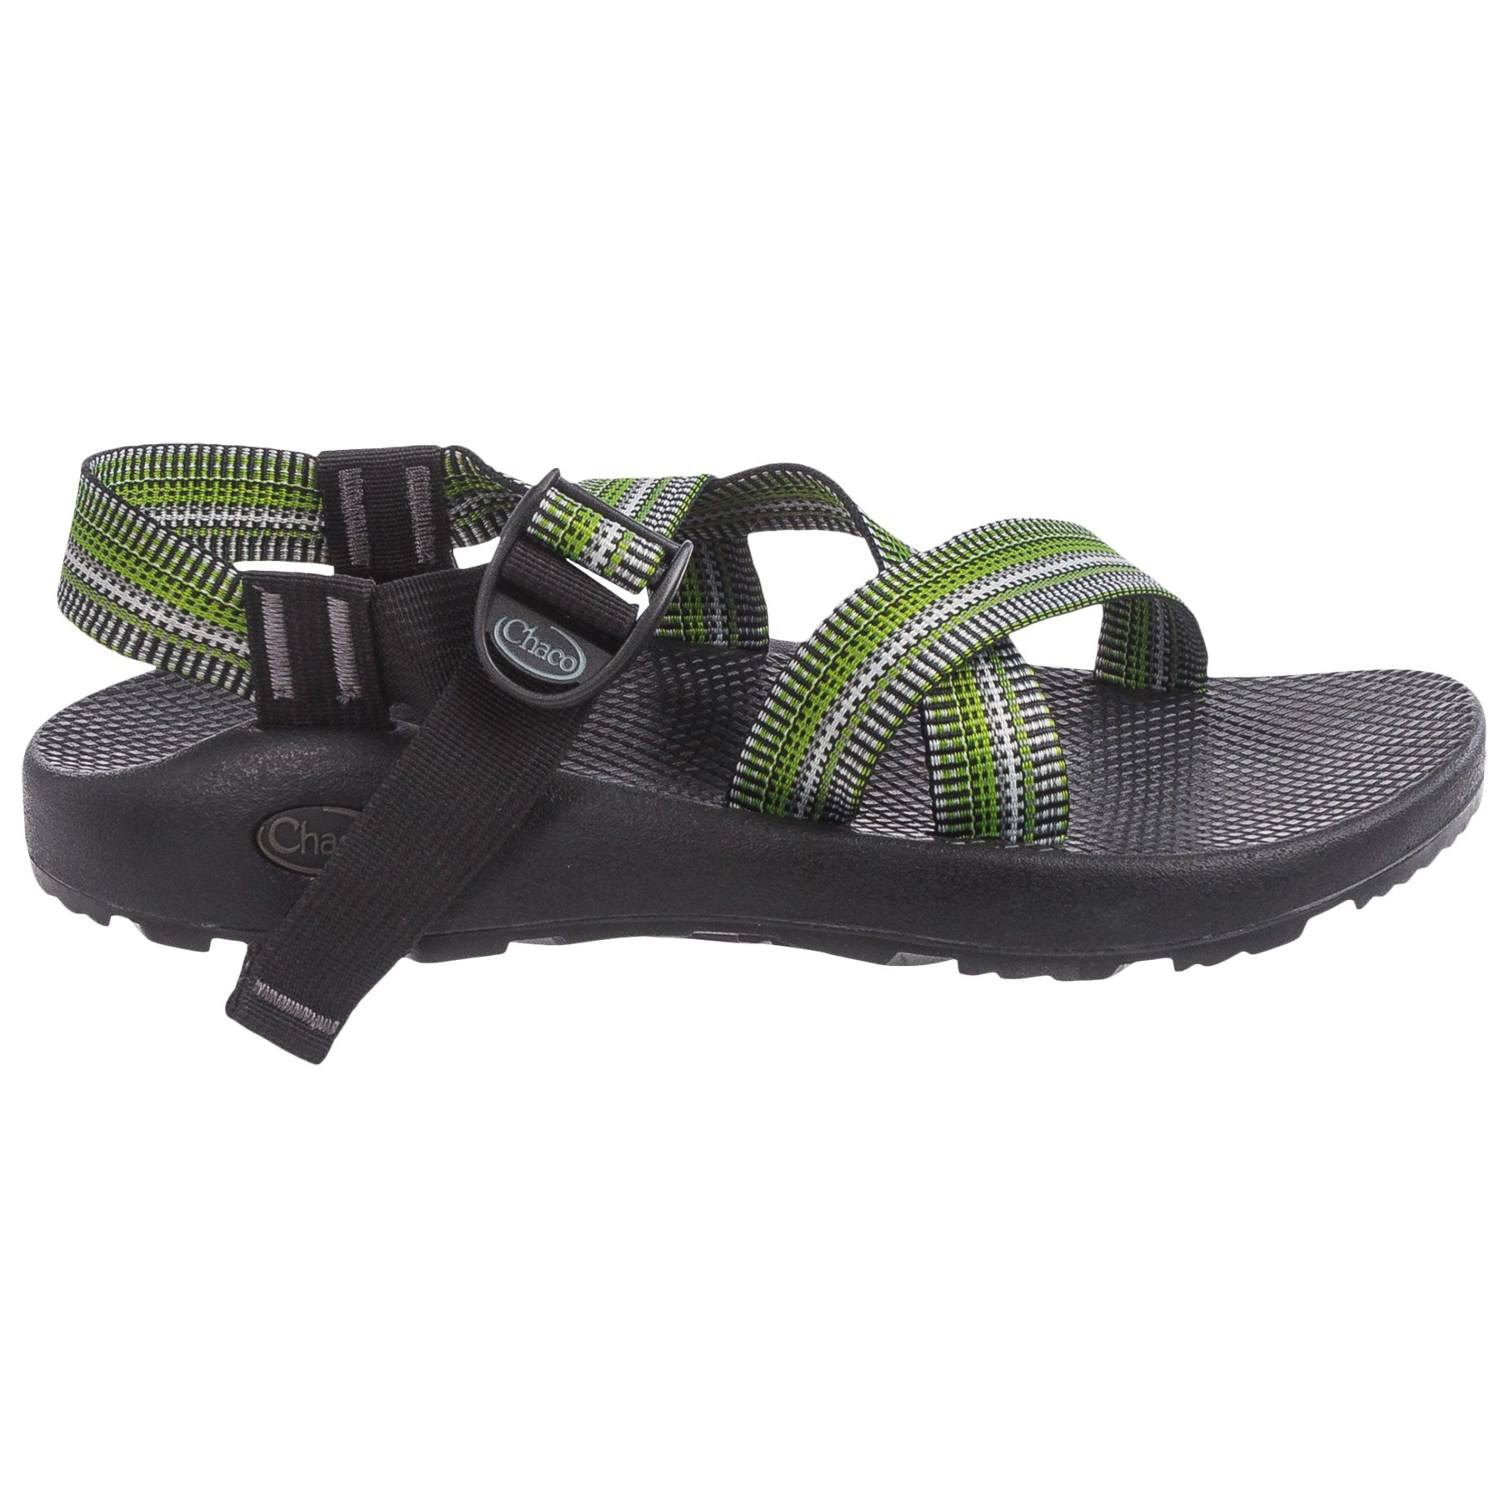 592a1fe8976 Chaco Z 1® Classic Sport Sandals (For Men) - Save 42%